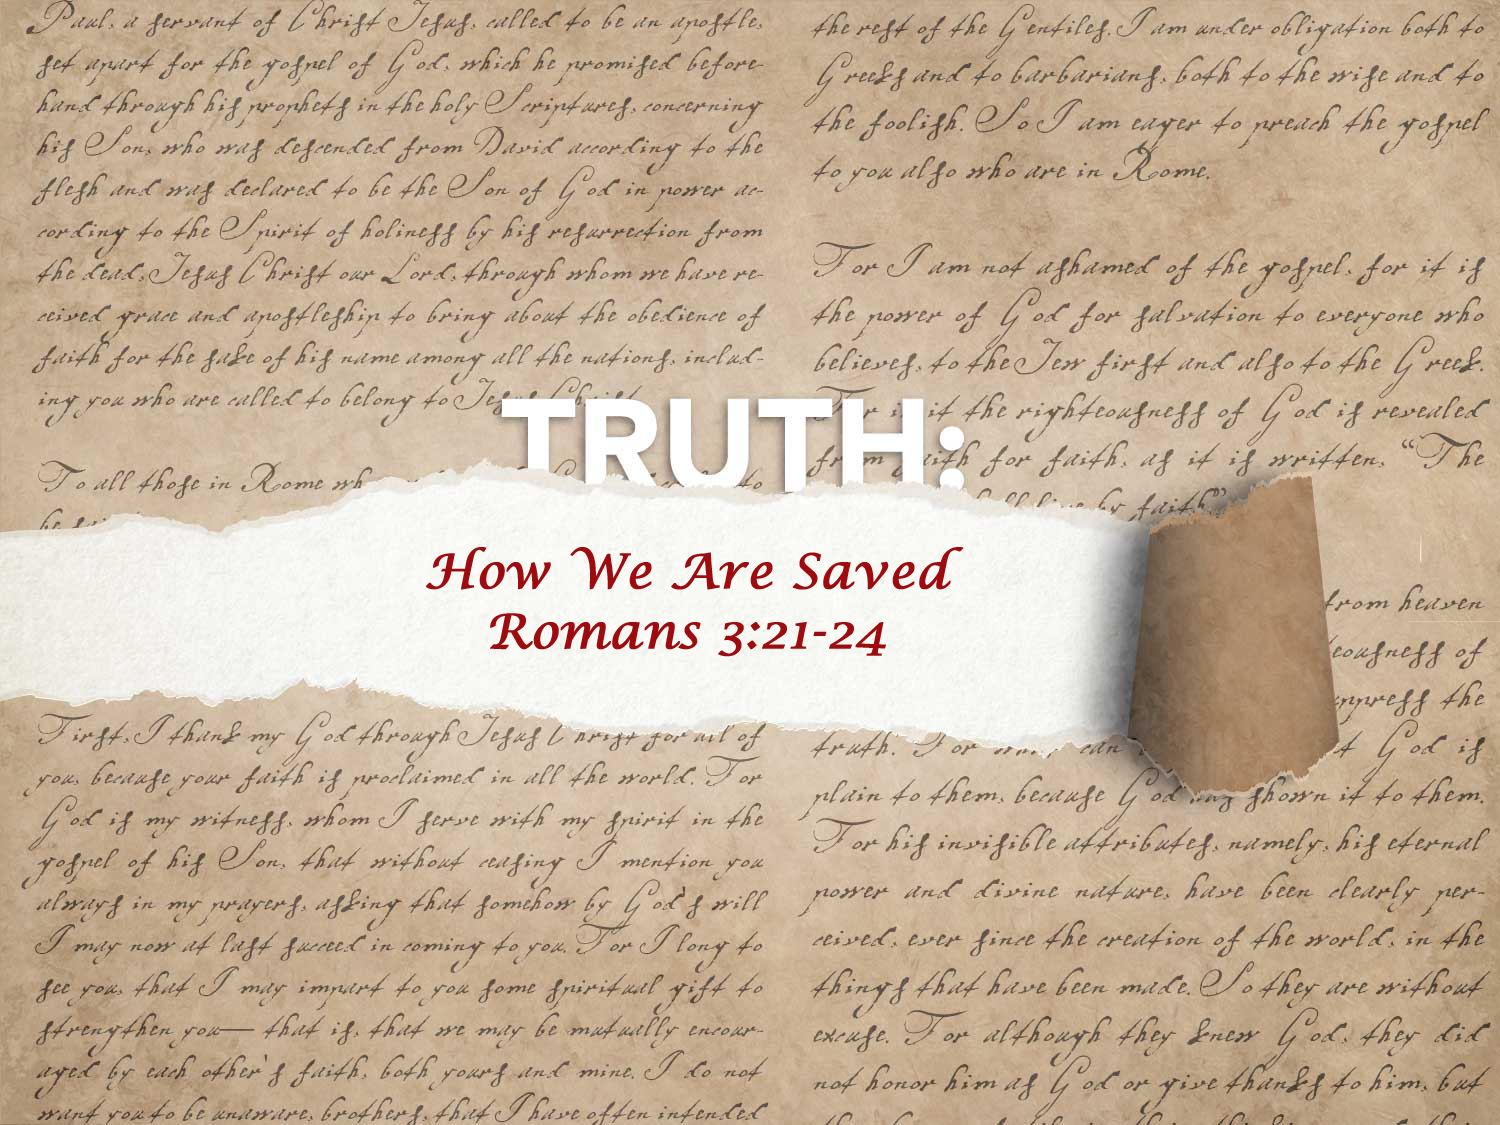 Romans 3:21-24 How We Are Saved